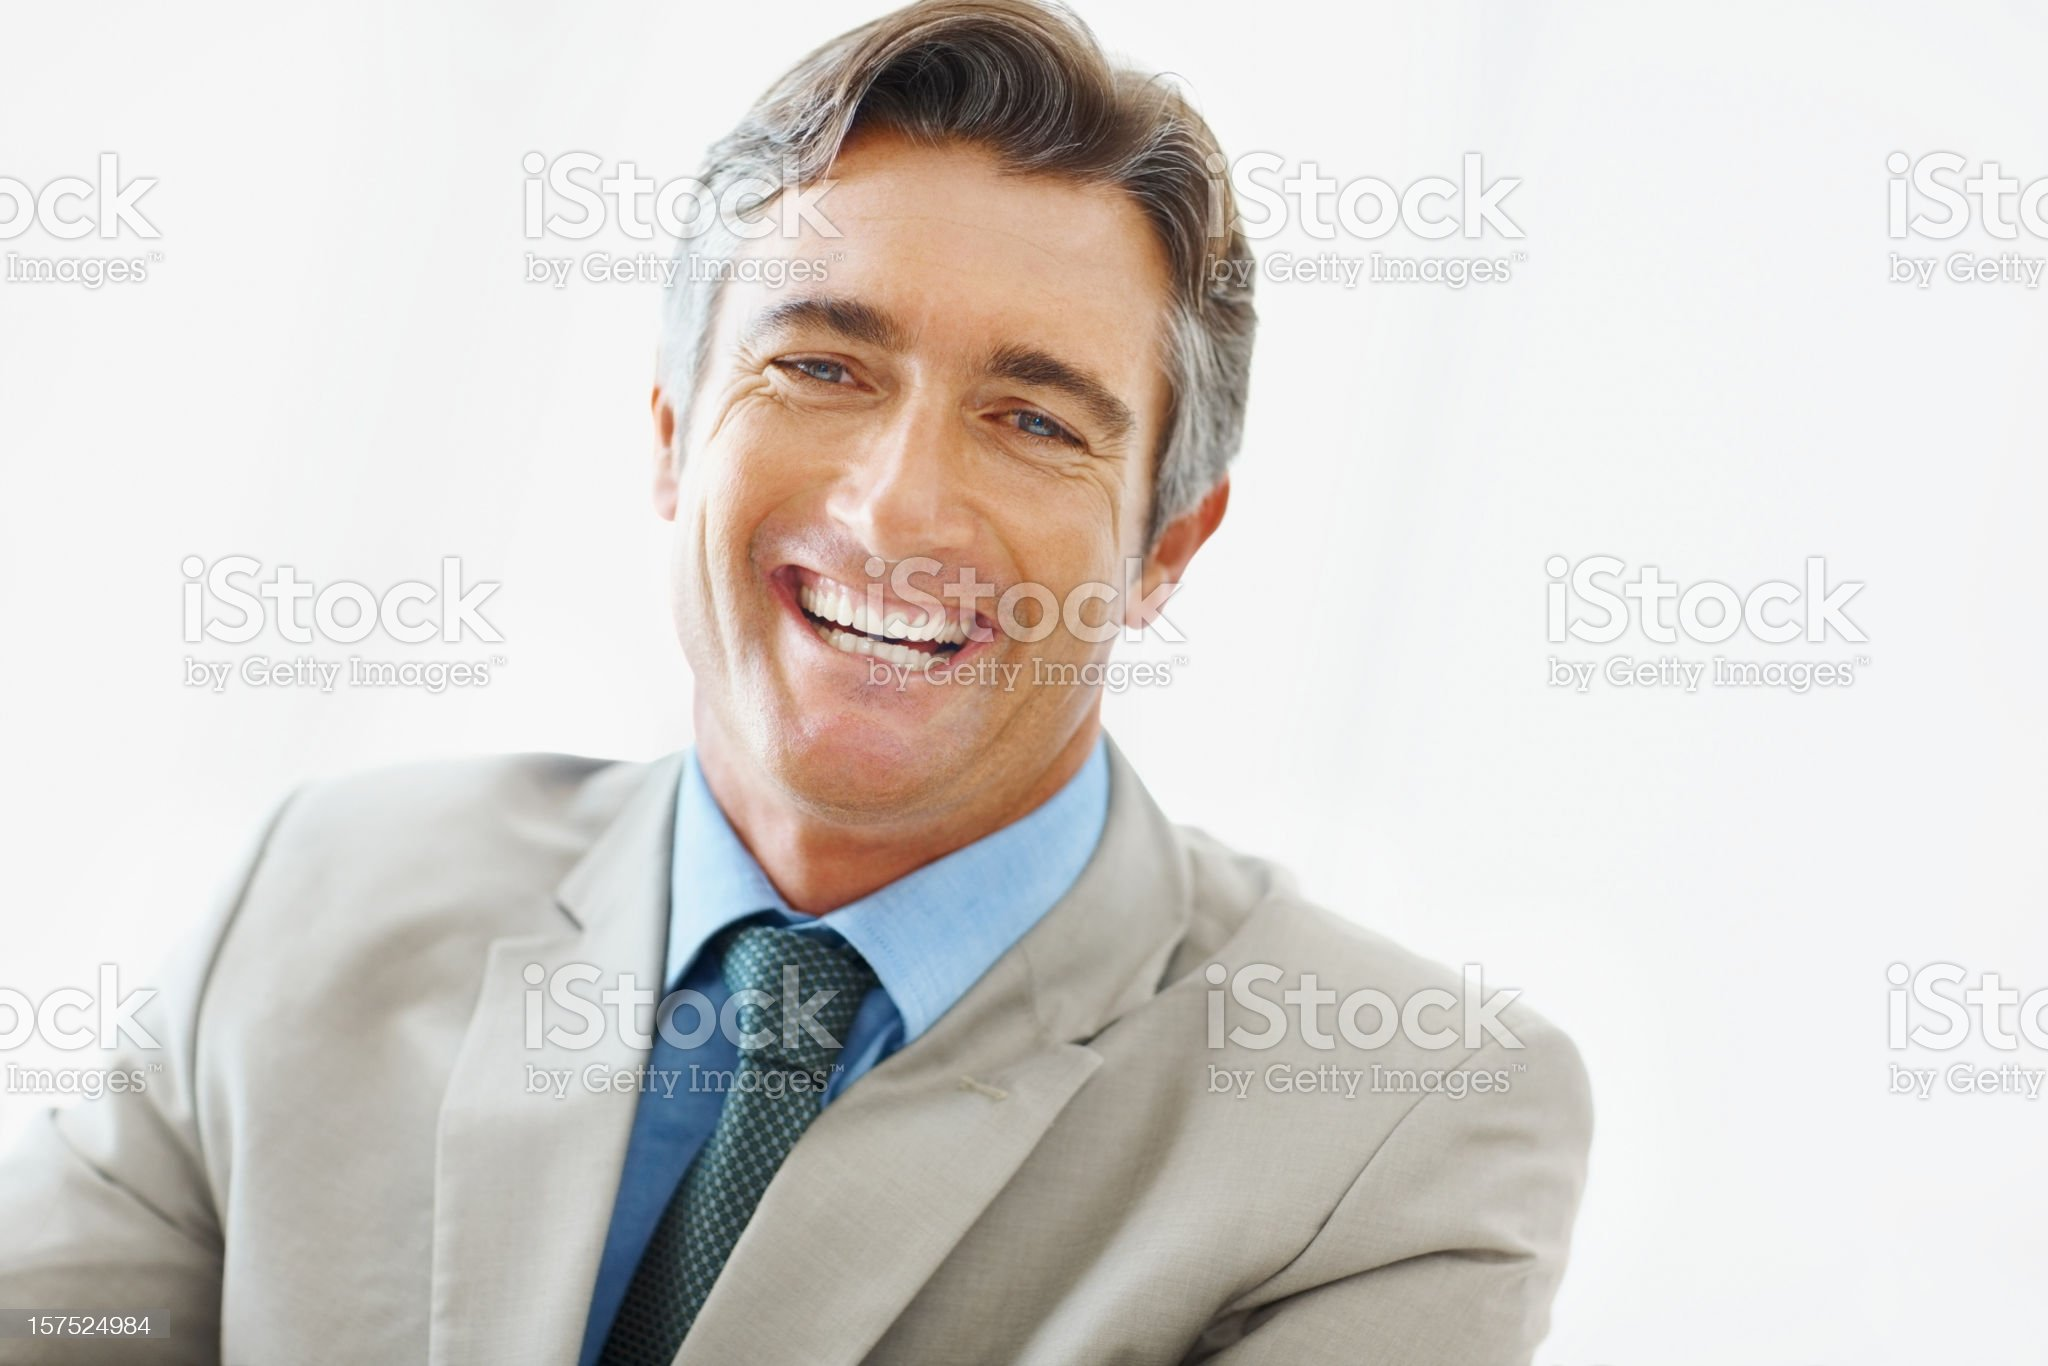 Portrait of a businessman laughing royalty-free stock photo